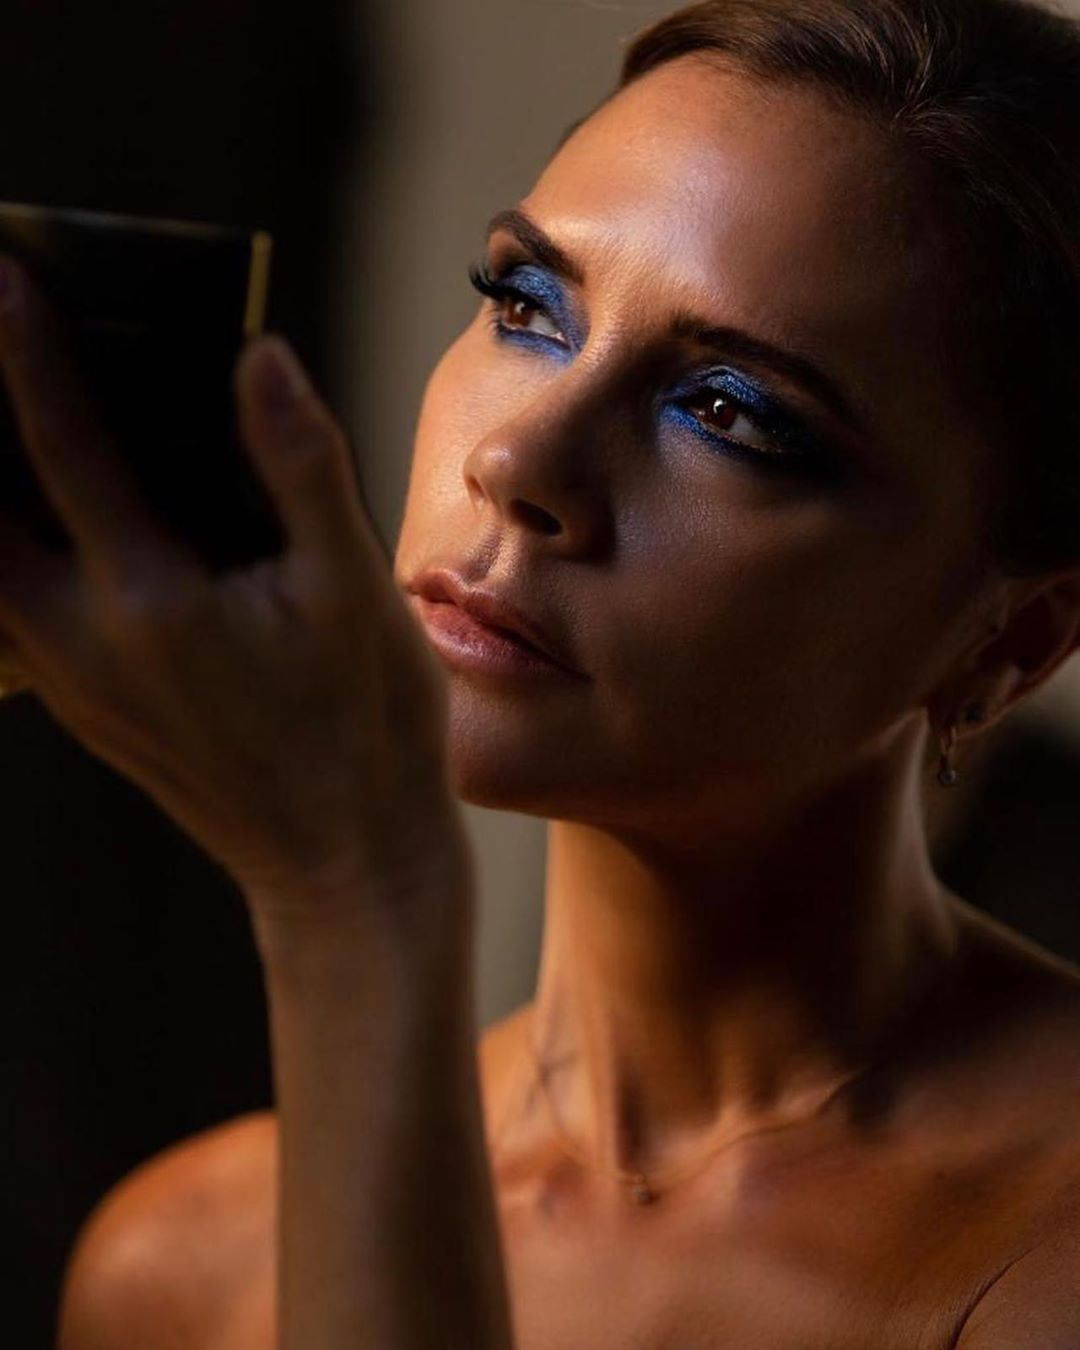 Victoria Beckham has finally launched her beauty brand